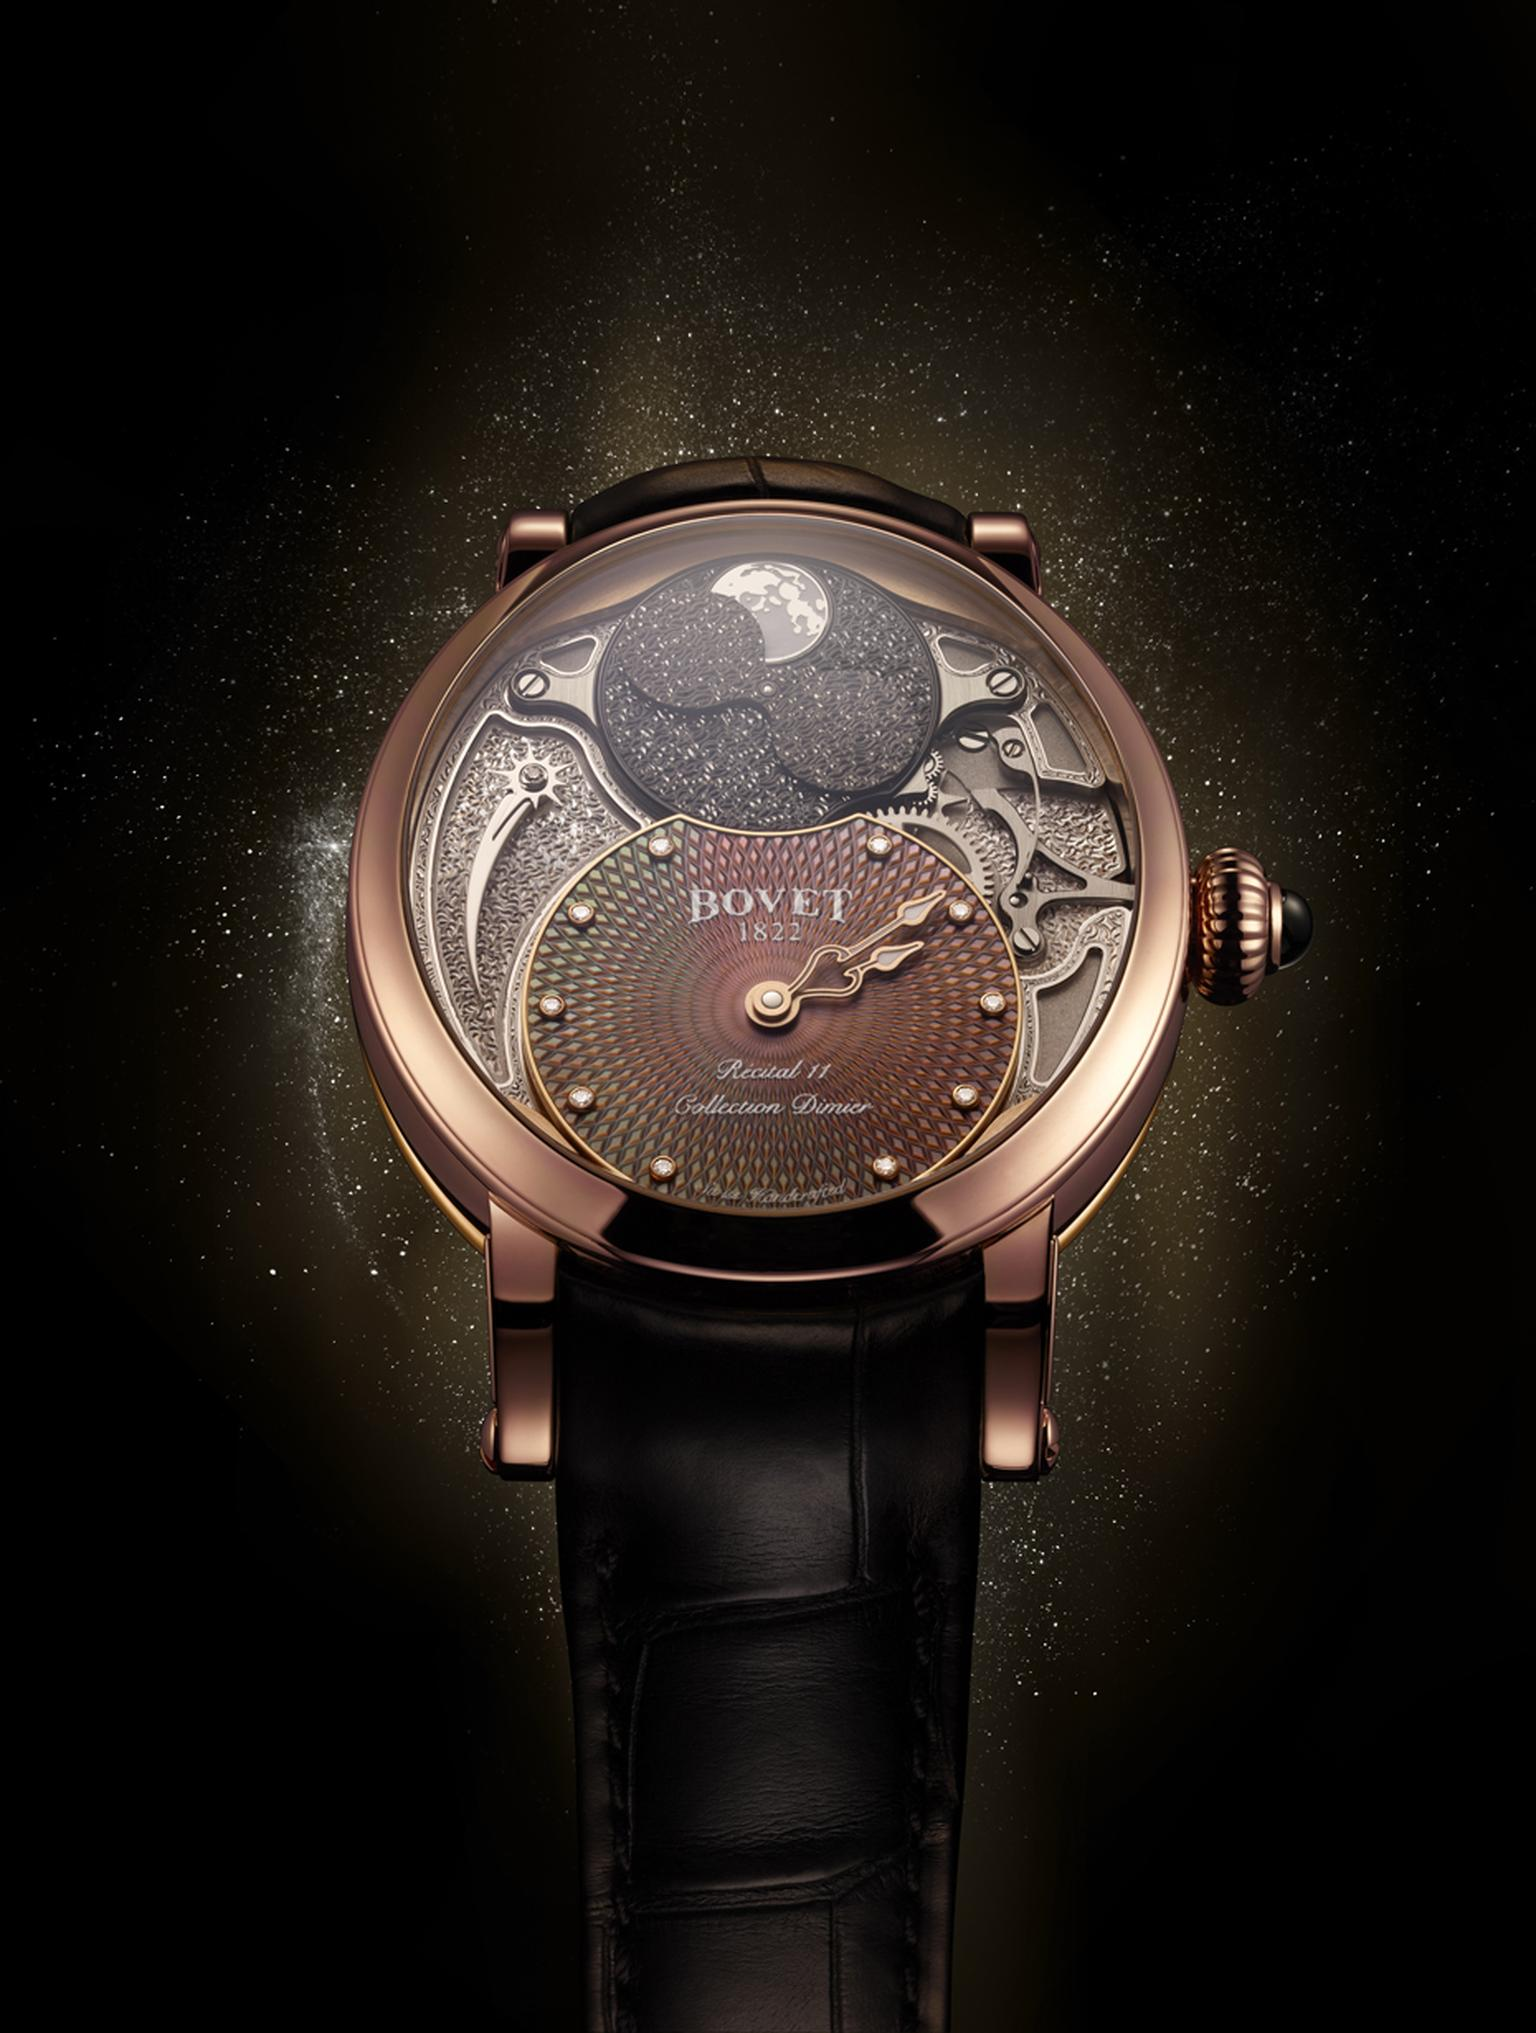 Bovet's Récital 11 Miss Alexandra Tourbillon is a showcase for Bovet's impeccable horological credentials